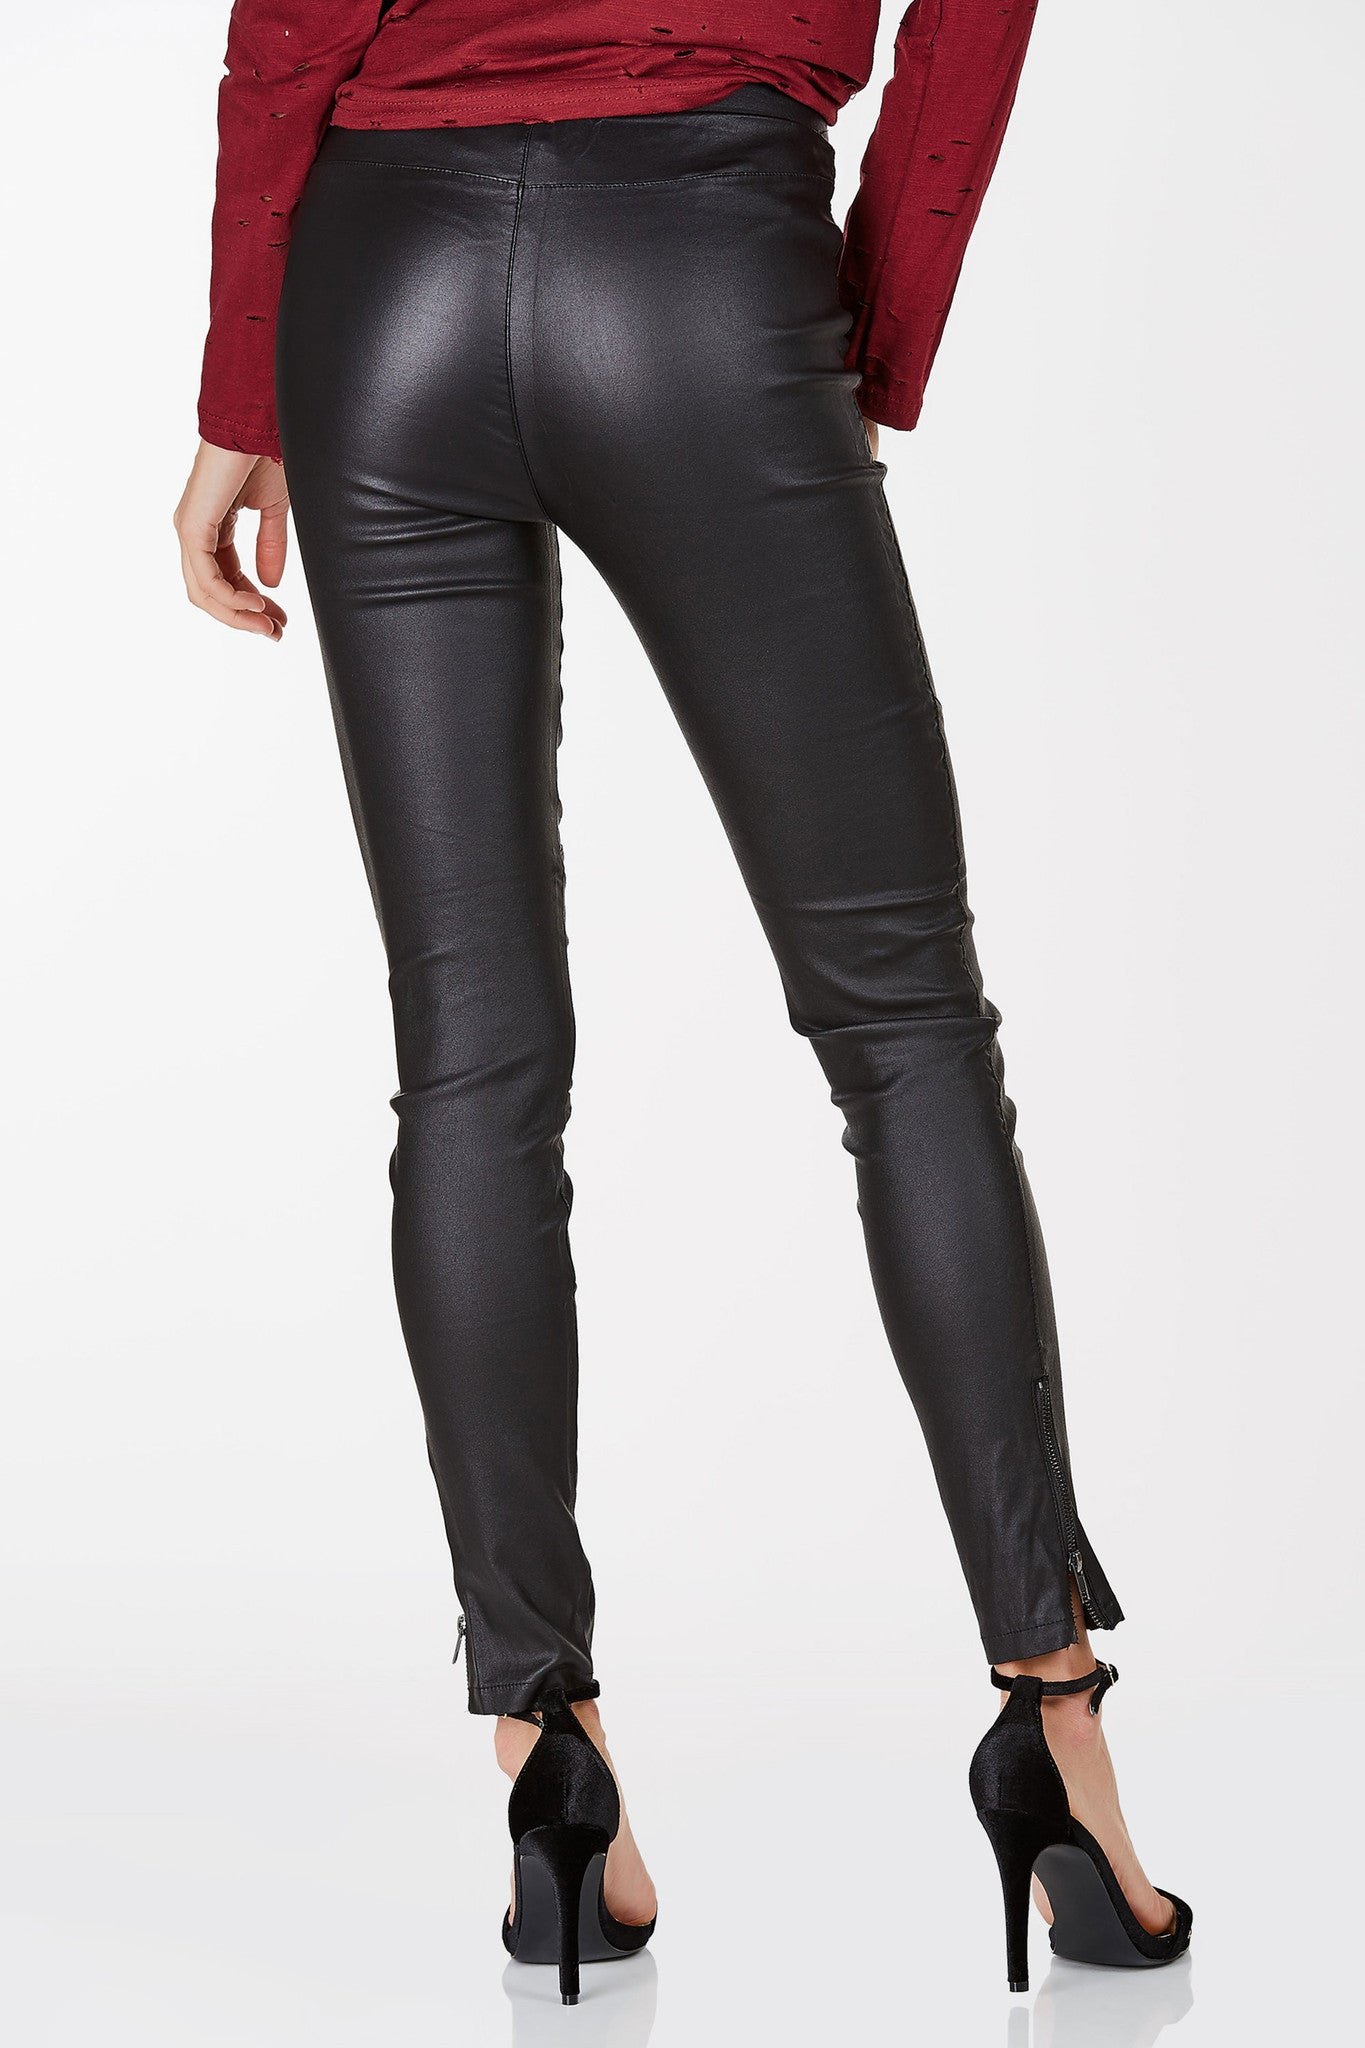 High waisted pants with faux leather finish. Zip detailing at hem with stretchy slim fit.